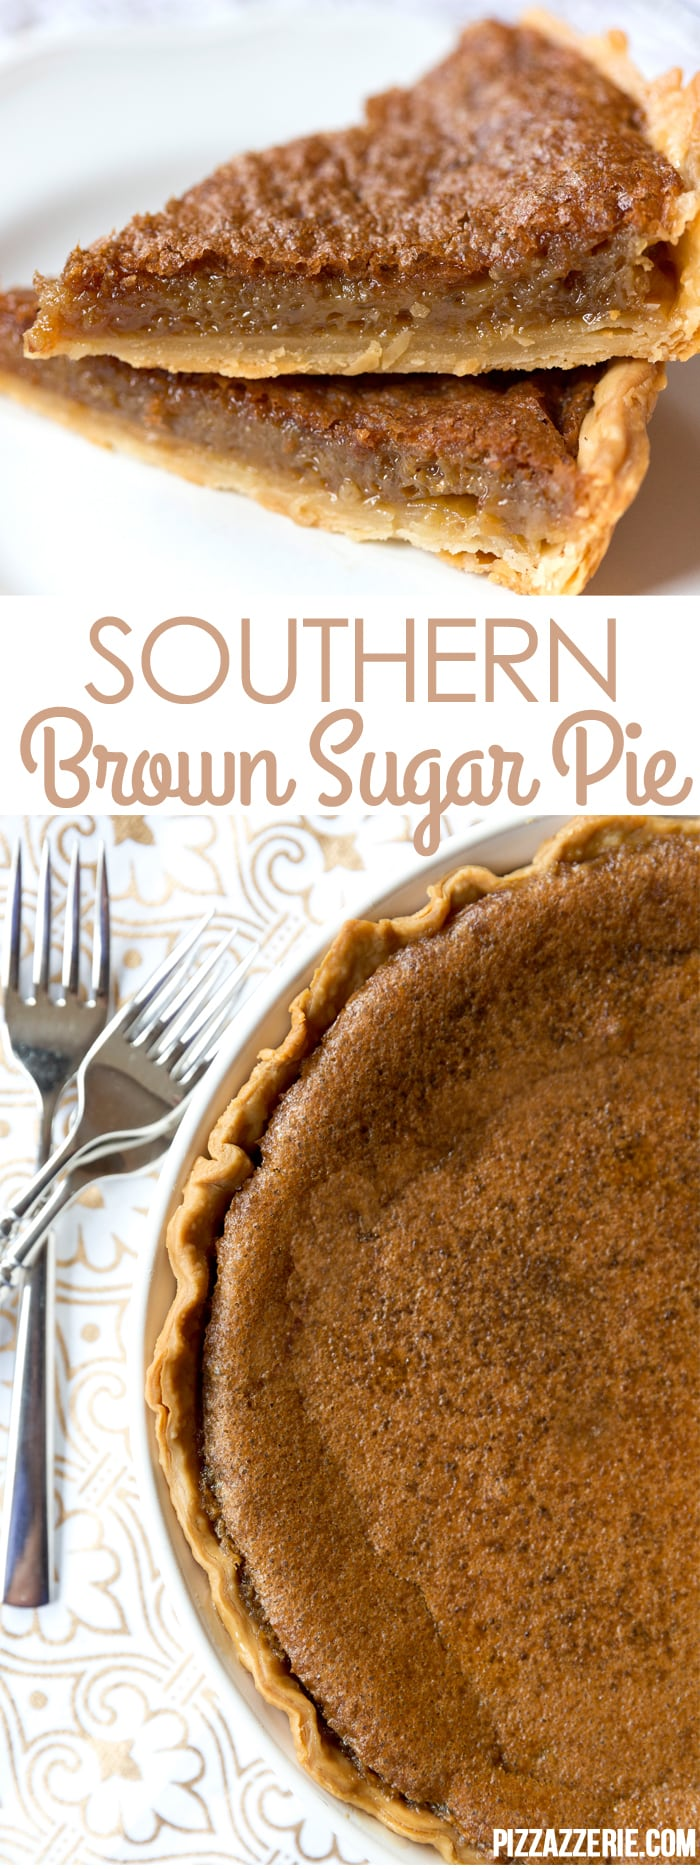 Southern Brown Sugar Pie! If you've never tried this brown sugar pie, it's a must!